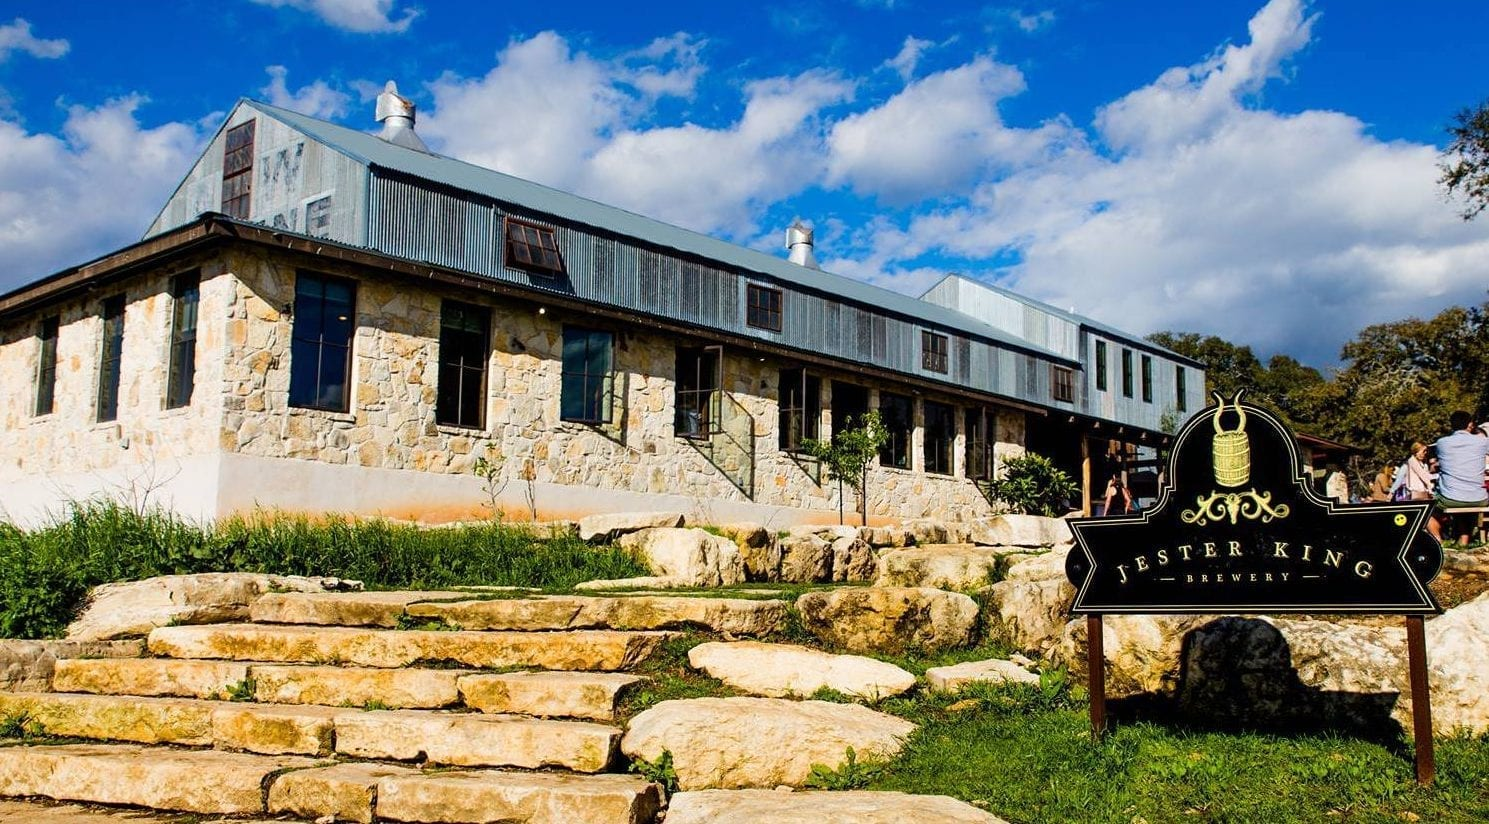 Jester-king-brewery-entrance